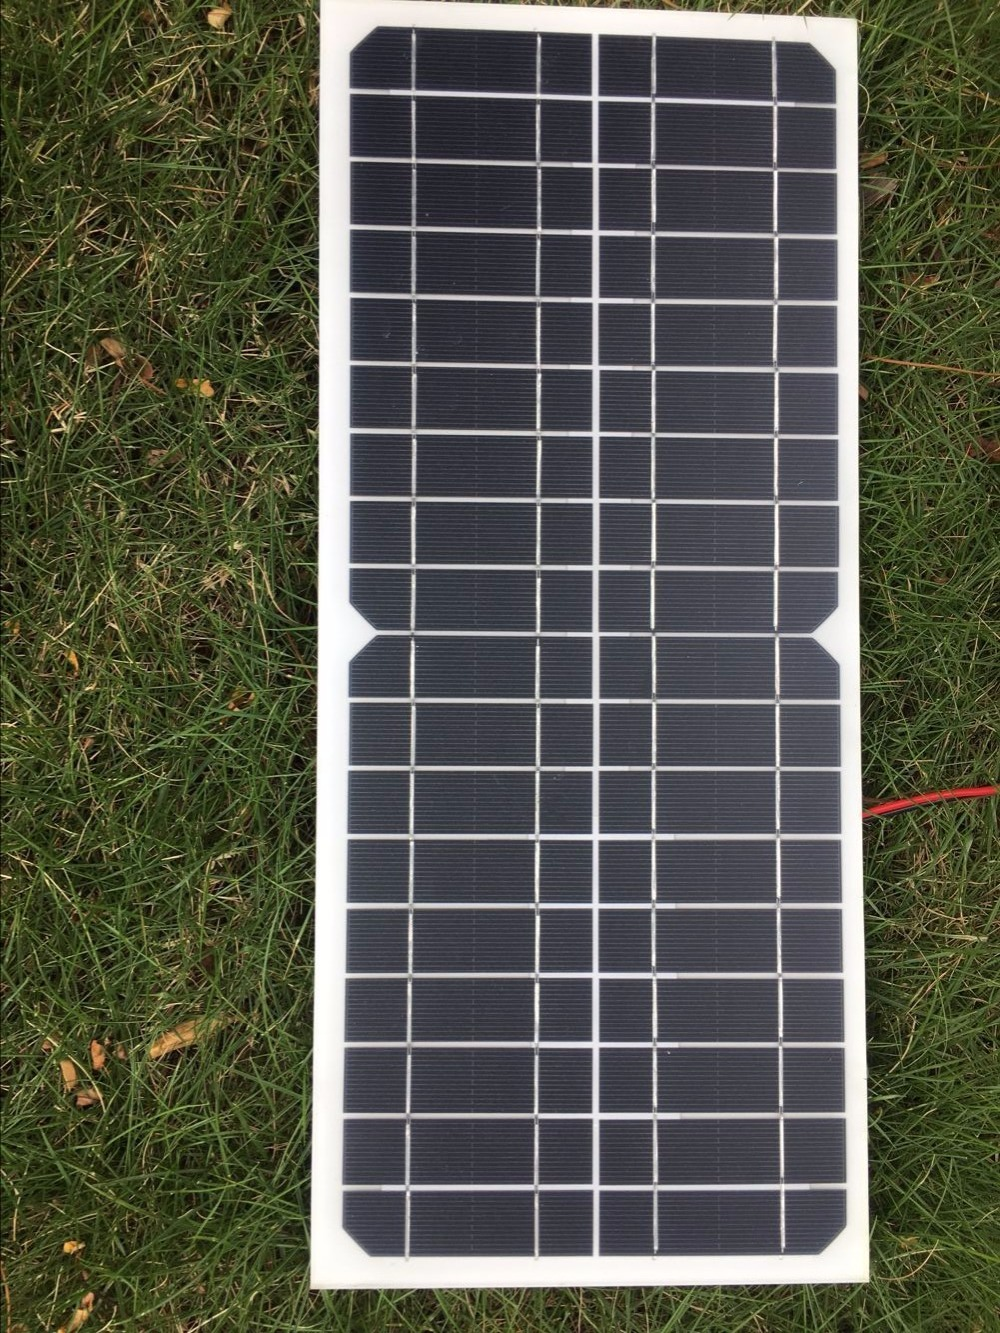 CNH 18V 10w solar cell kit Transparent semi-flexible Monocrystalline solar panel DIY module outdoor connector DC 12v charger image